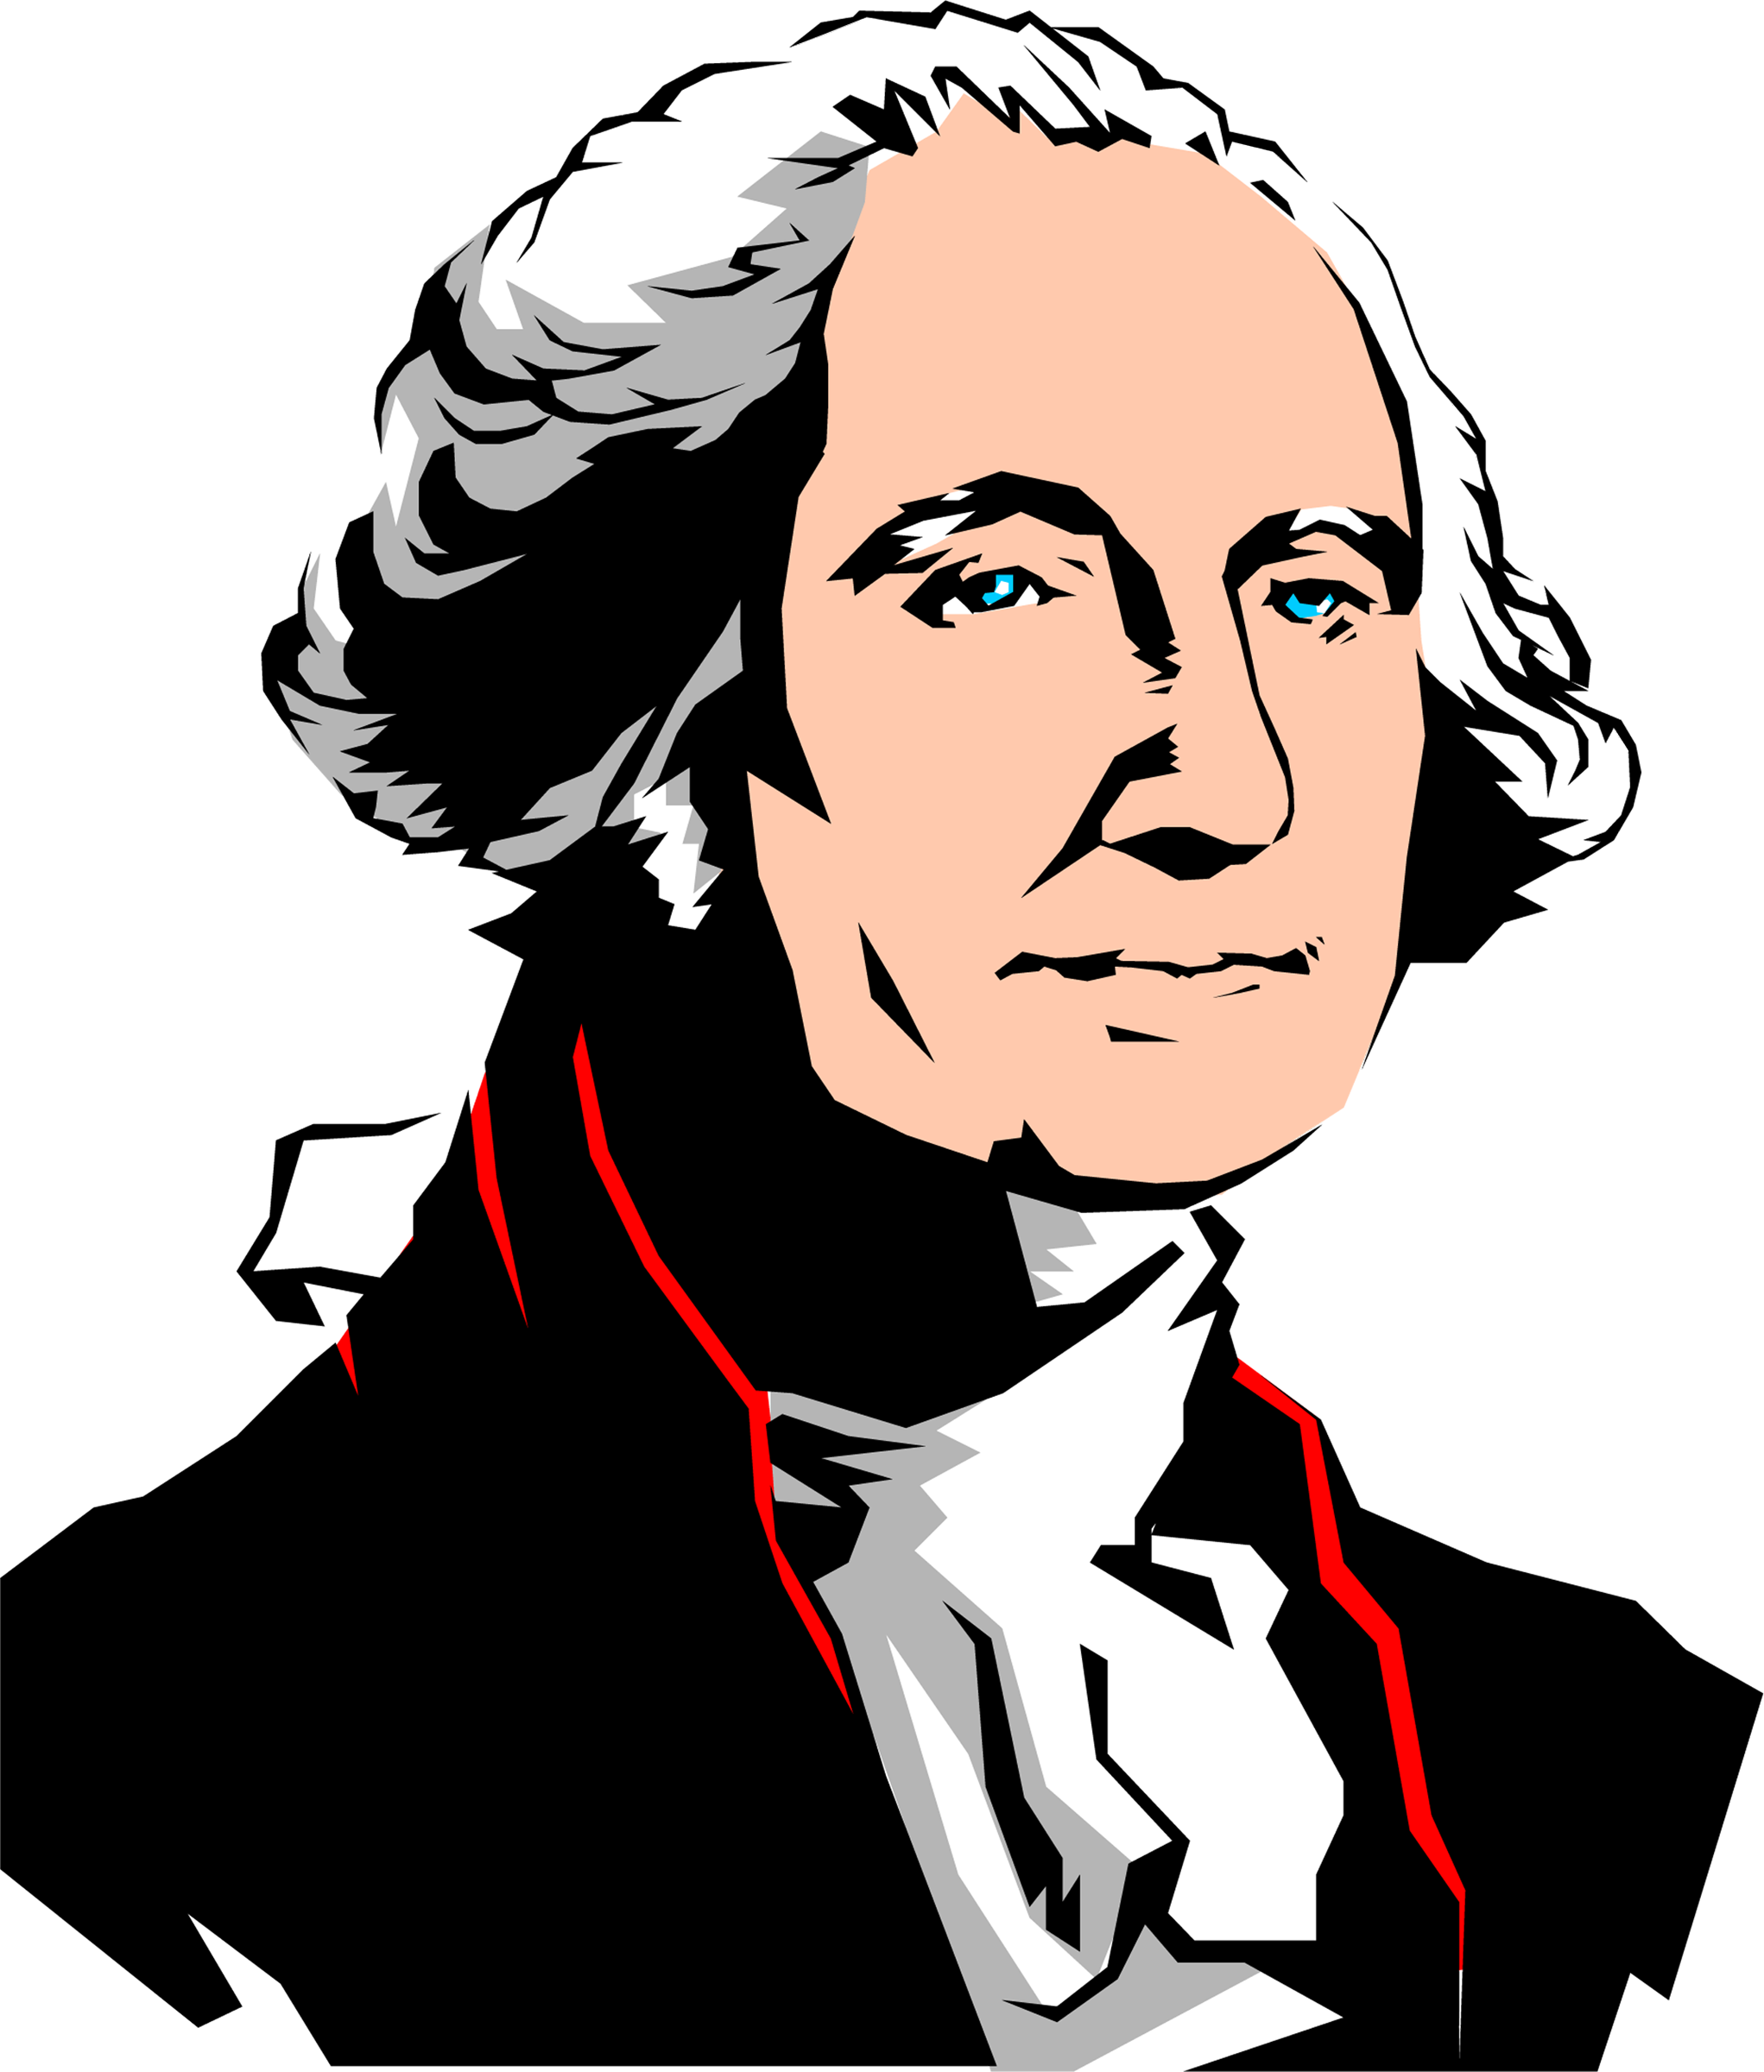 George Washington Cartoon Drawing at GetDrawings.com | Free for ...